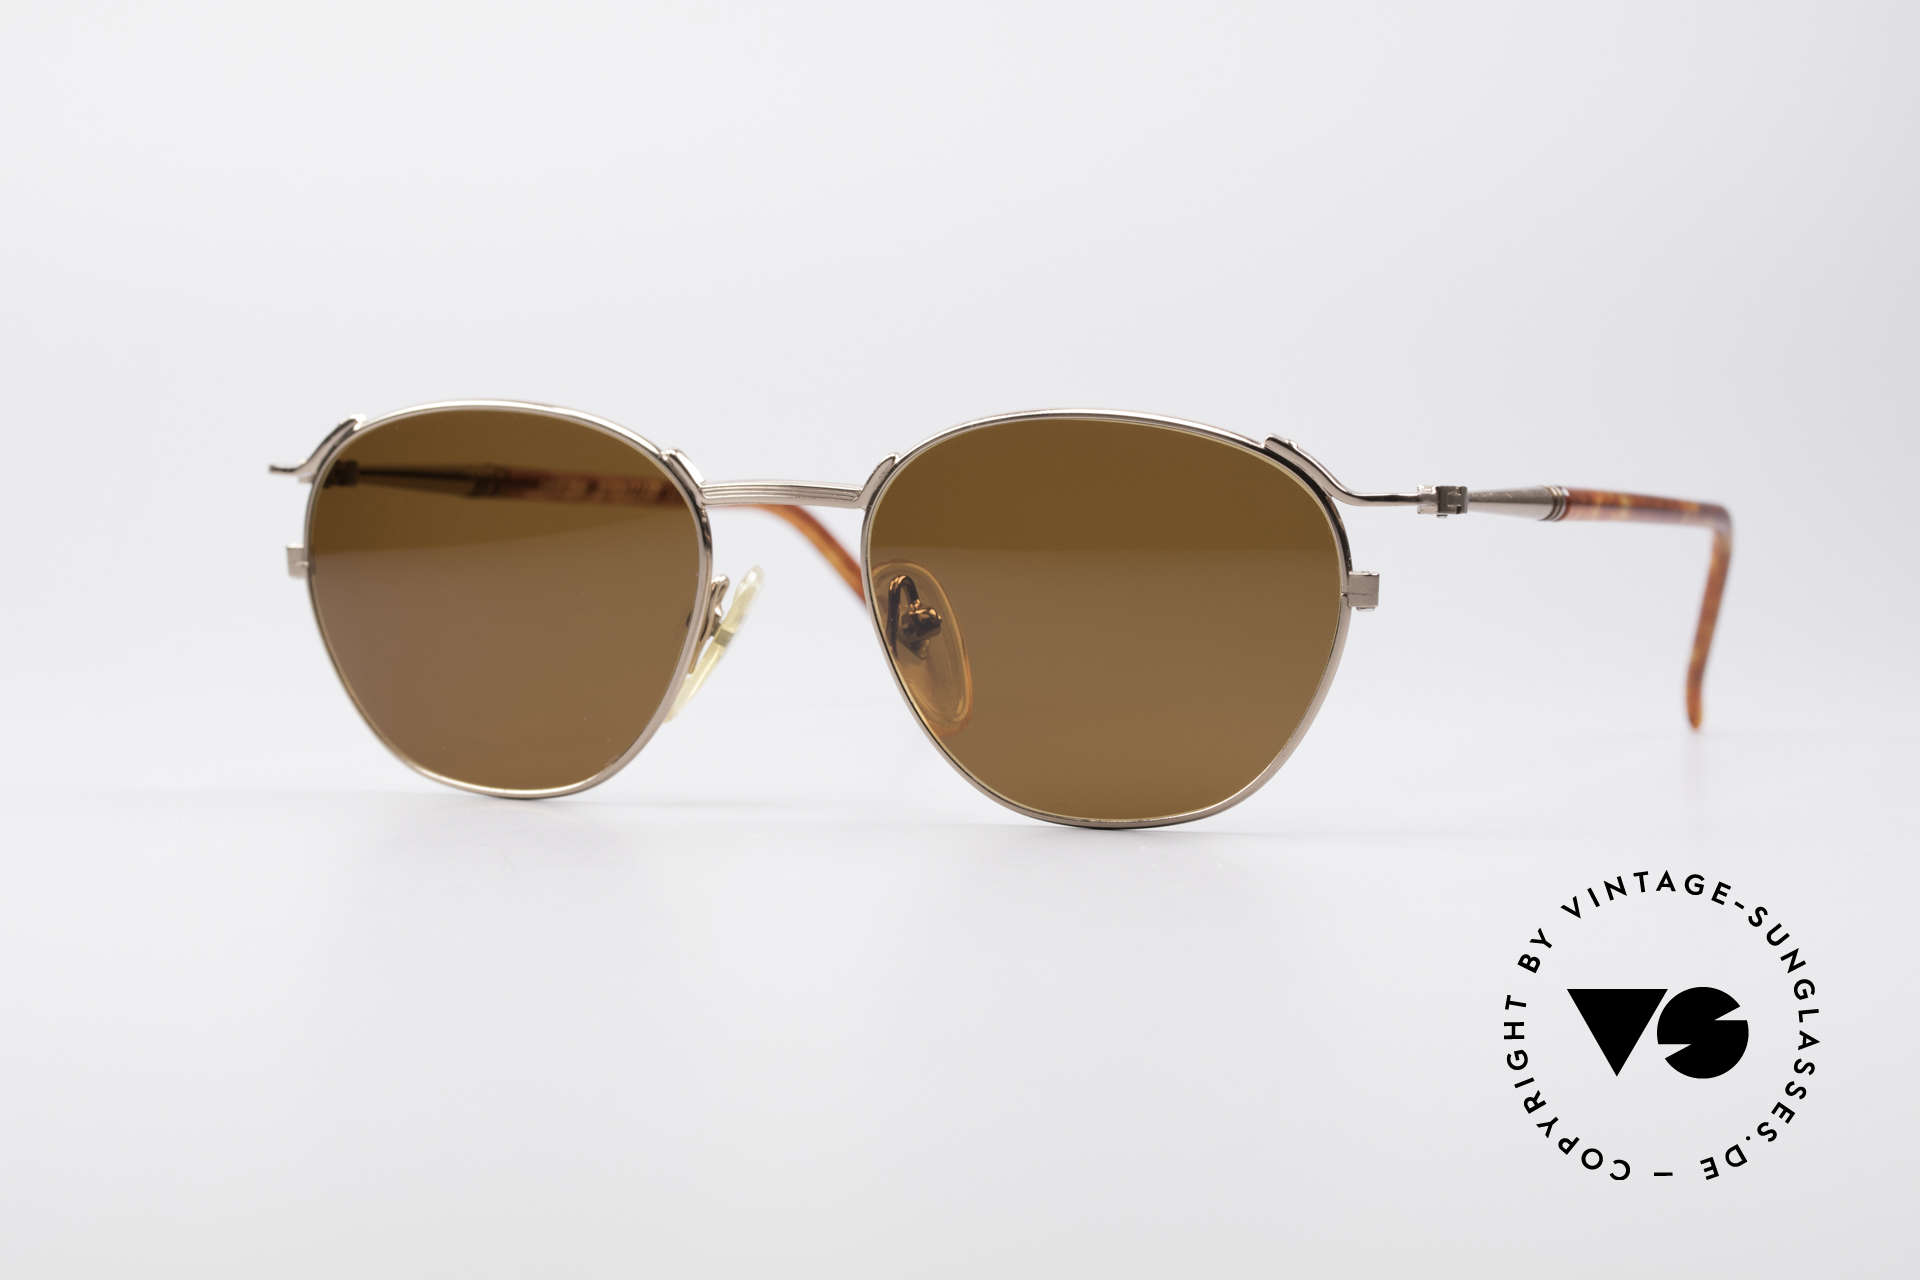 Jean Paul Gaultier 57-2276 True Vintage 90's Shades, unique designer glasses by Jean Paul GAULTIER, Made for Men and Women